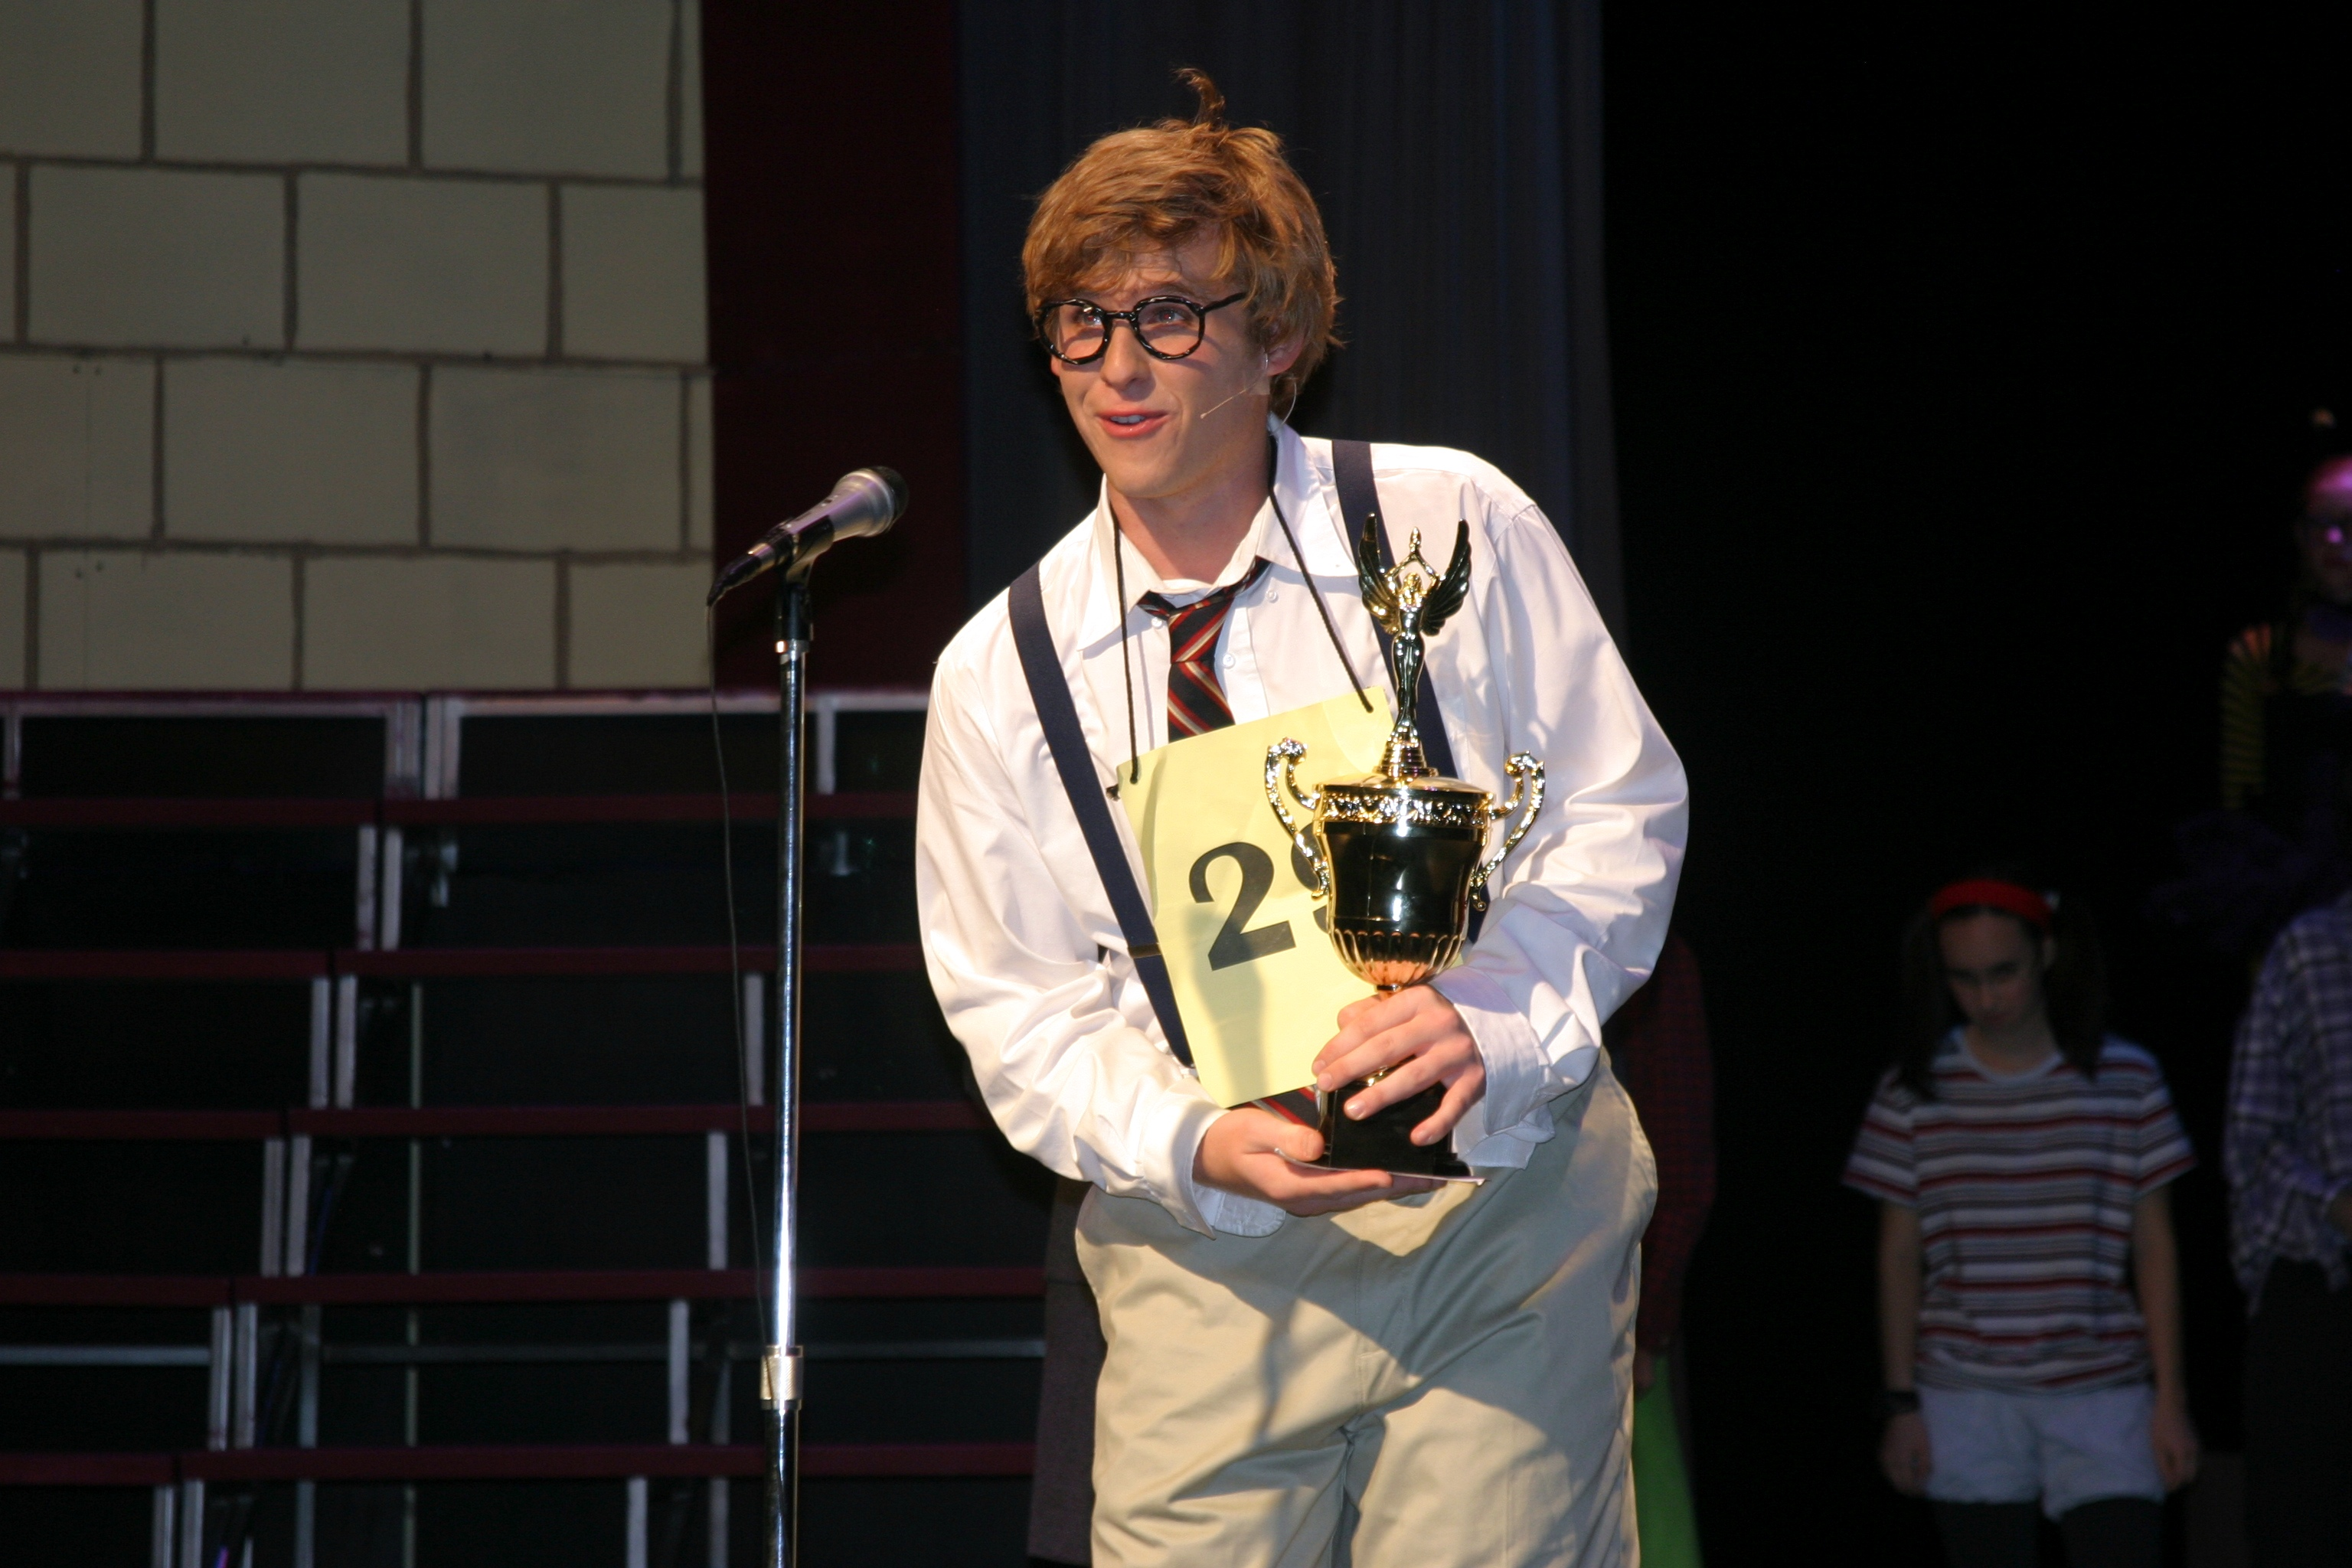 As for the ultimate Bee winner, William Barfée, Mr. Novak's performance was ...